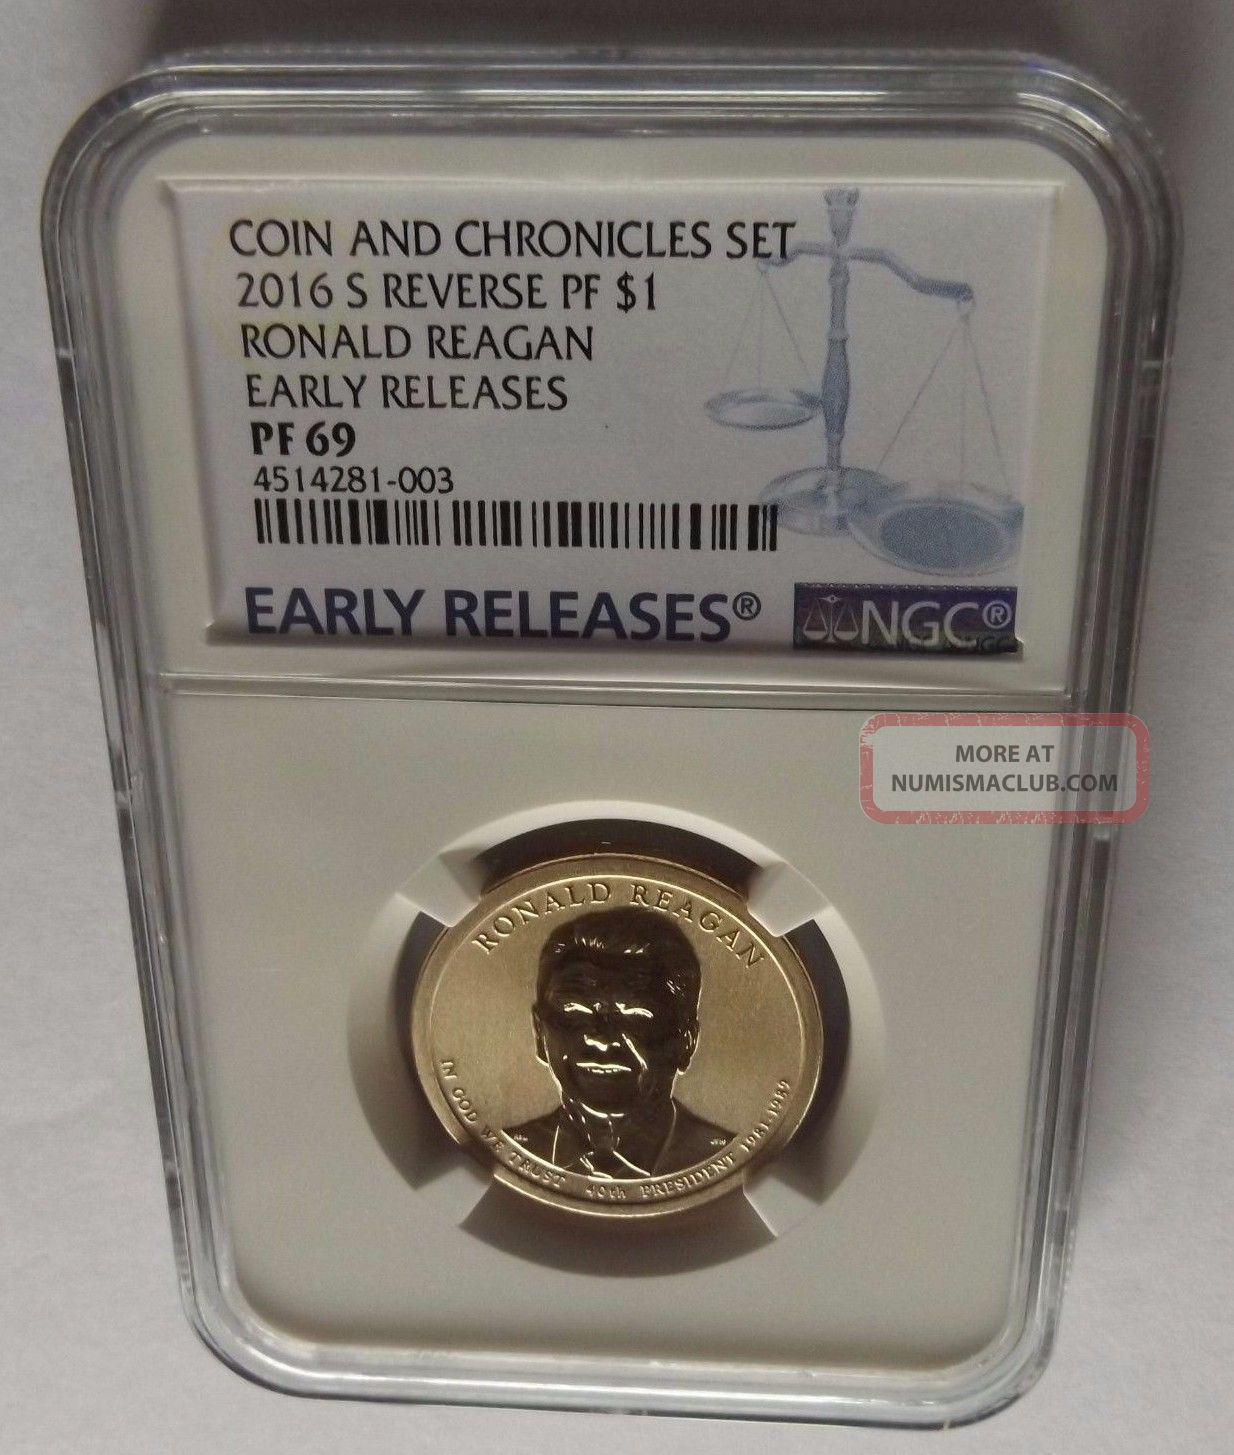 2016 - S Ngc Early Releases Pf69 Reverse Pf Ronald Reagan Coin And Chronicles $1 Dollars photo